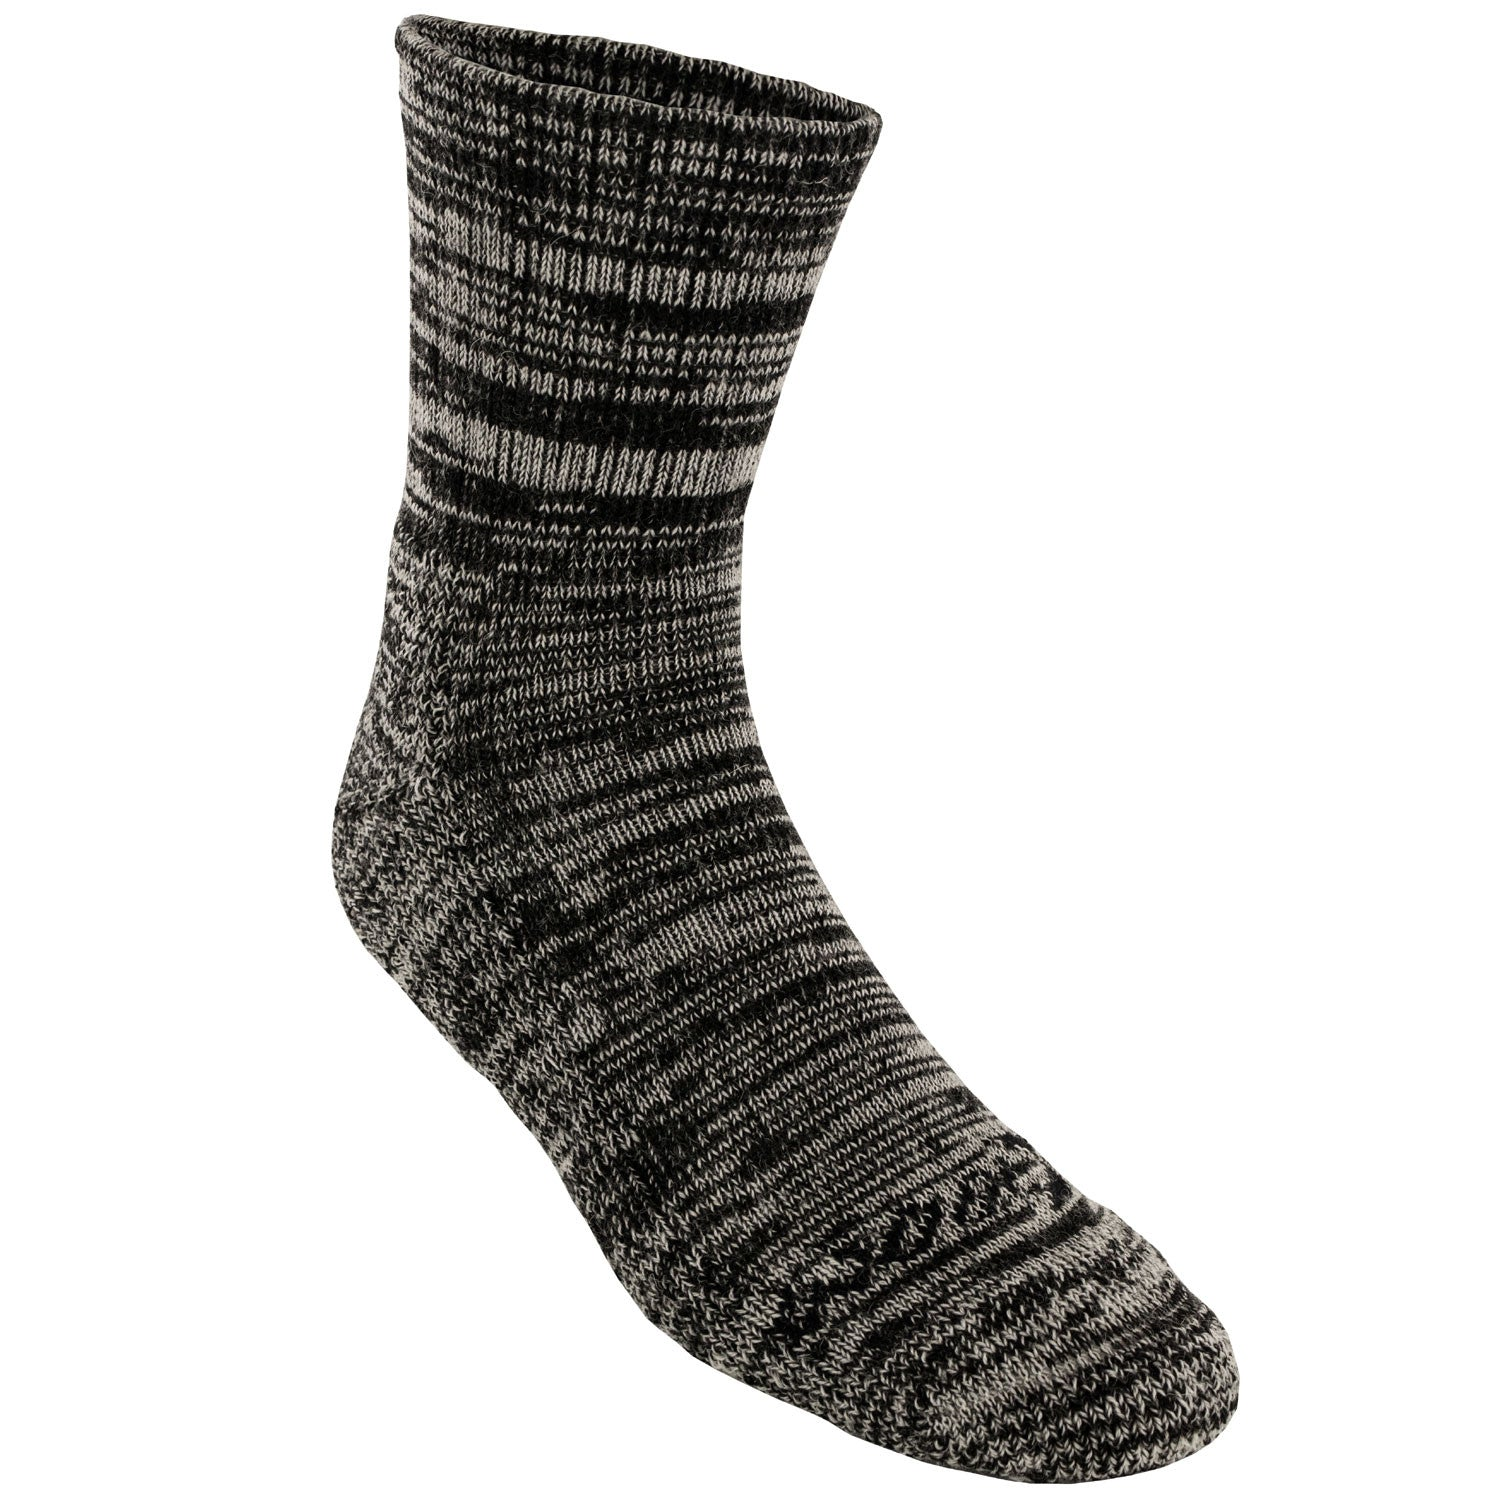 Unisex Merino Wool Socks - Black Melange